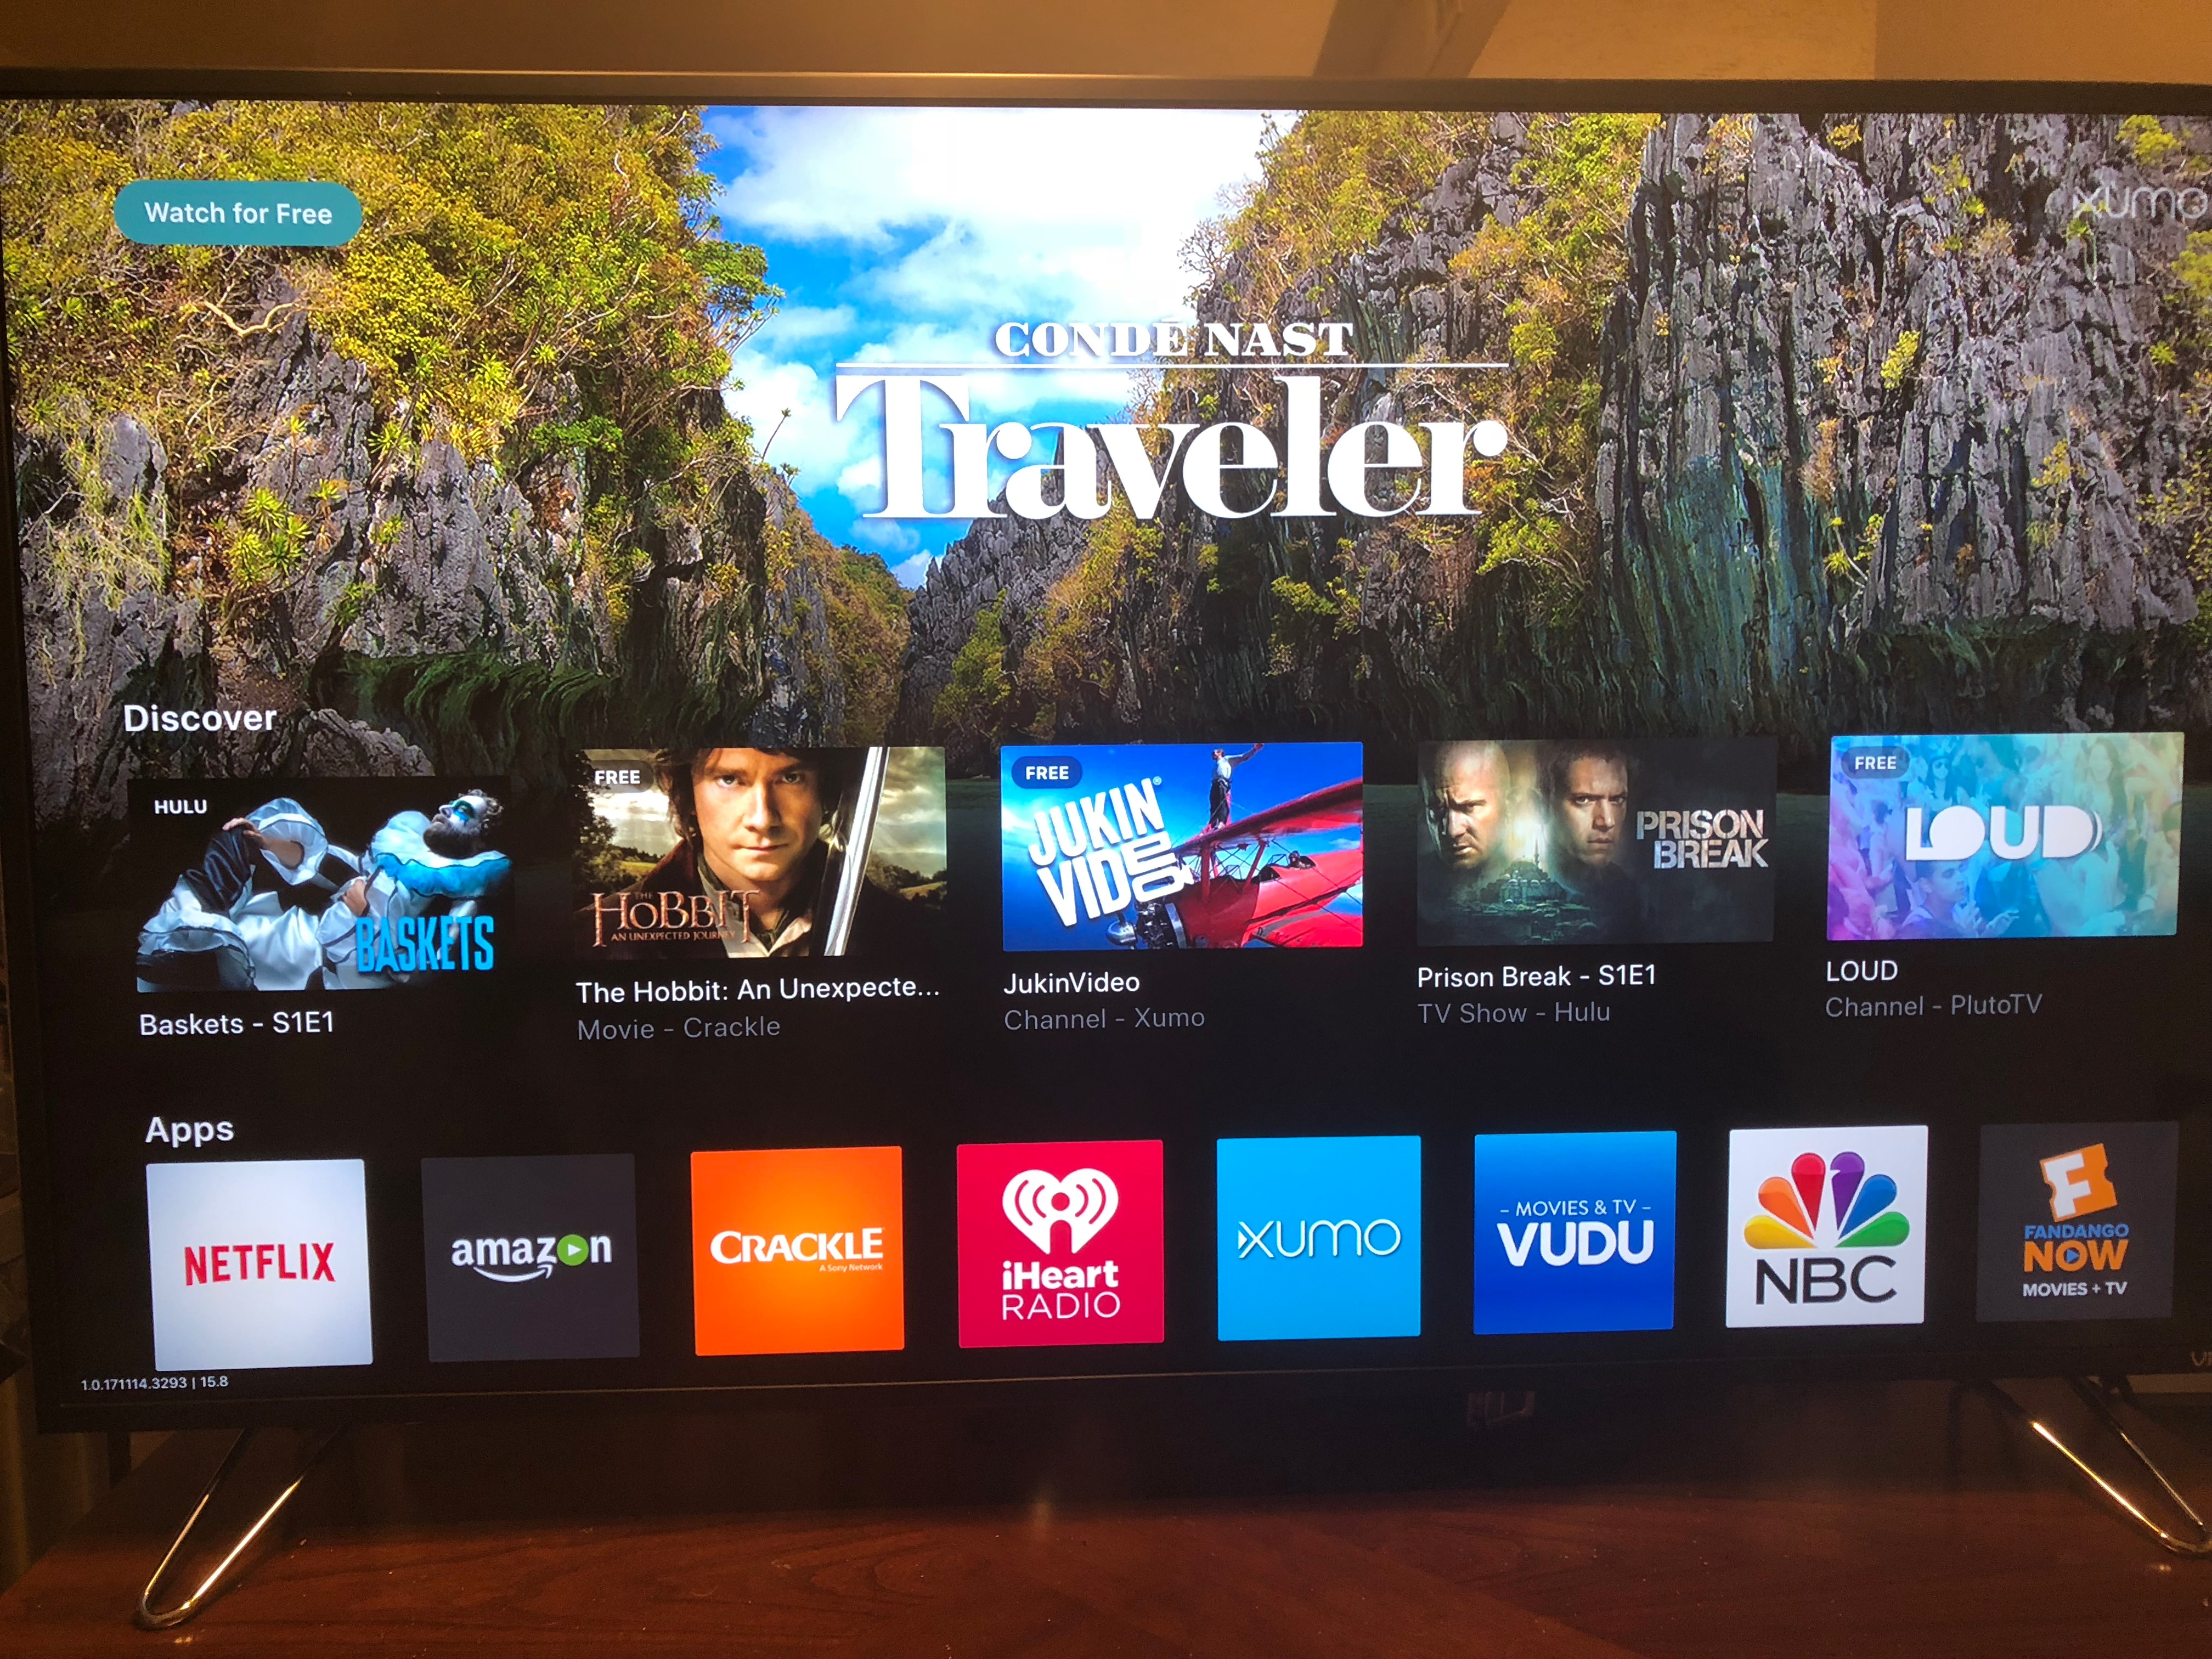 Review: VIZIO M50-E1 4K HDR SmartCast Display Perfect Match for the Apple TV 4K